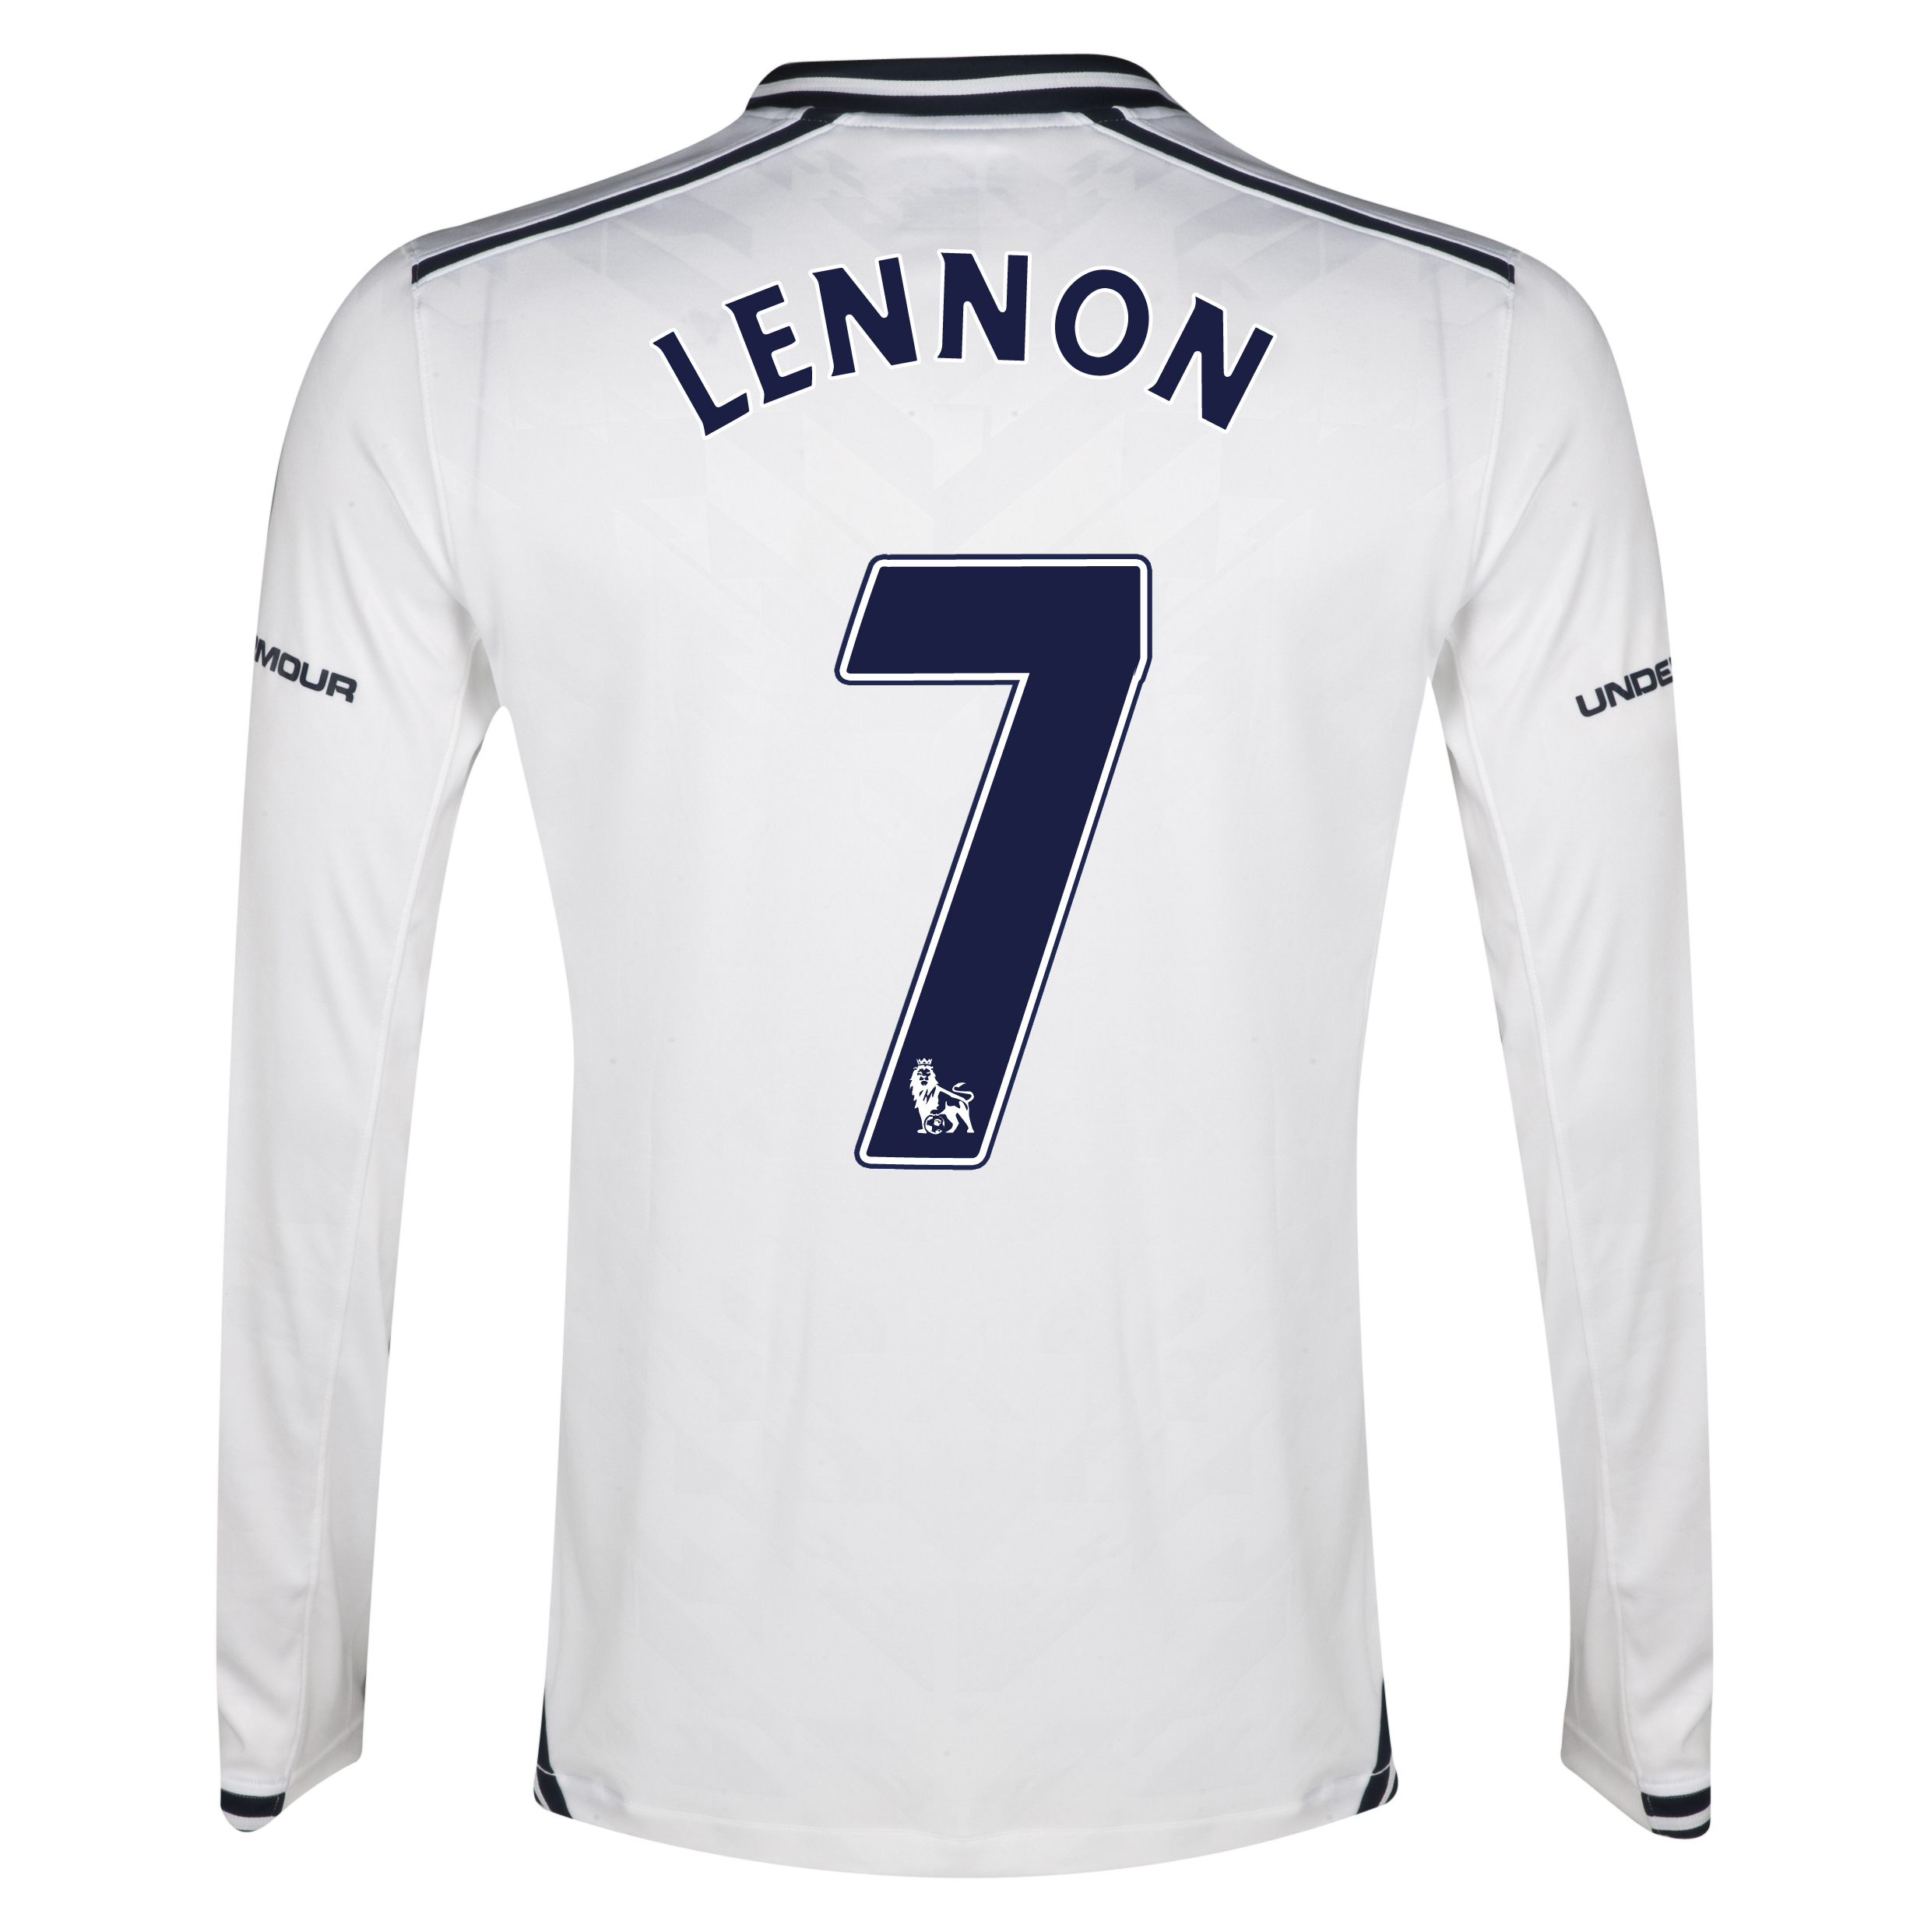 Tottenham Hotspur Home Shirt 2013/14 - Long Sleeve with Lennon 7 printing